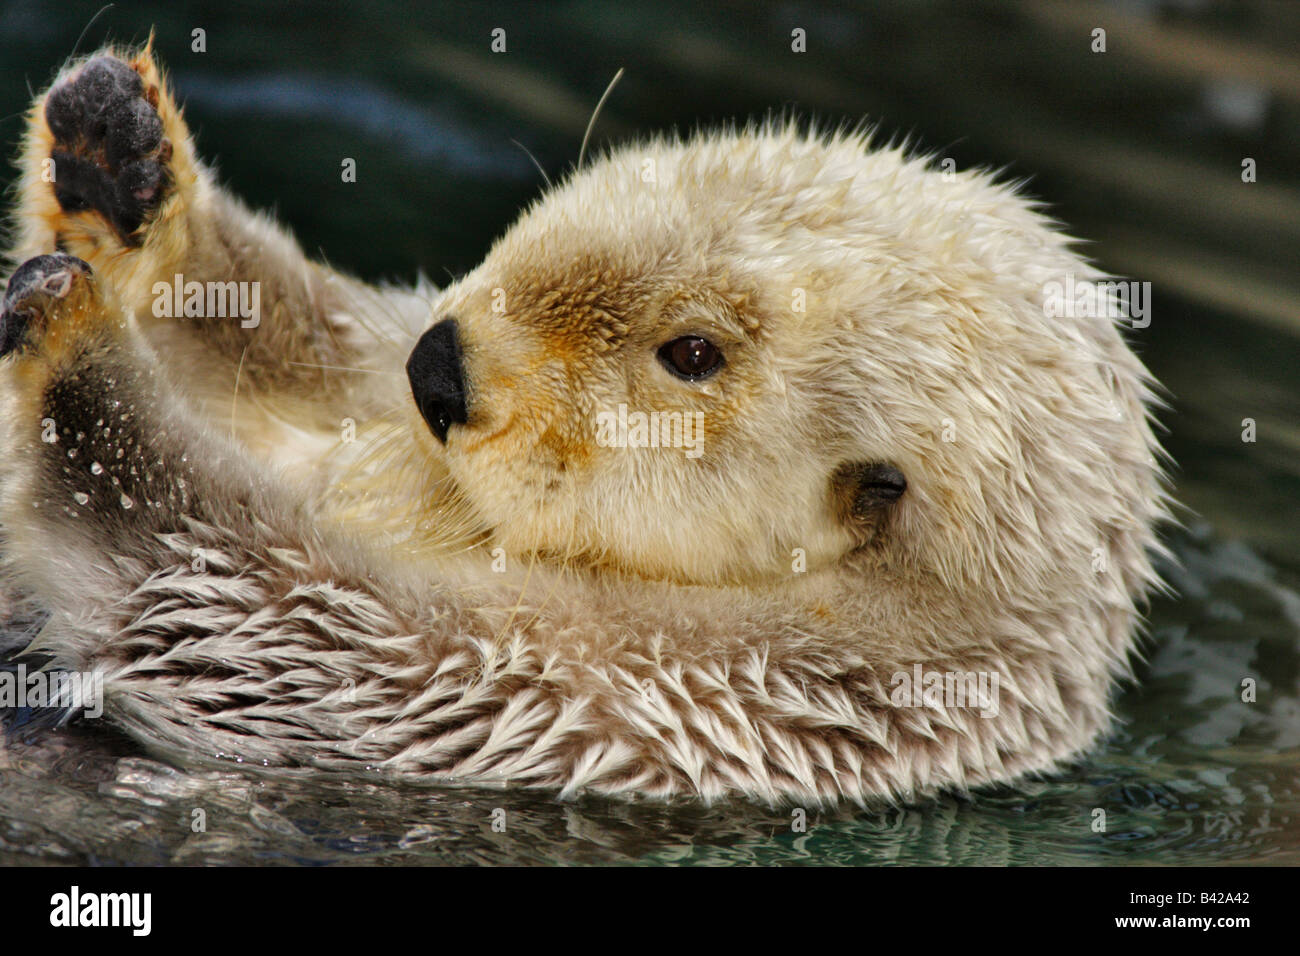 Sea otter grooming fur Note Captive subject - Stock Image